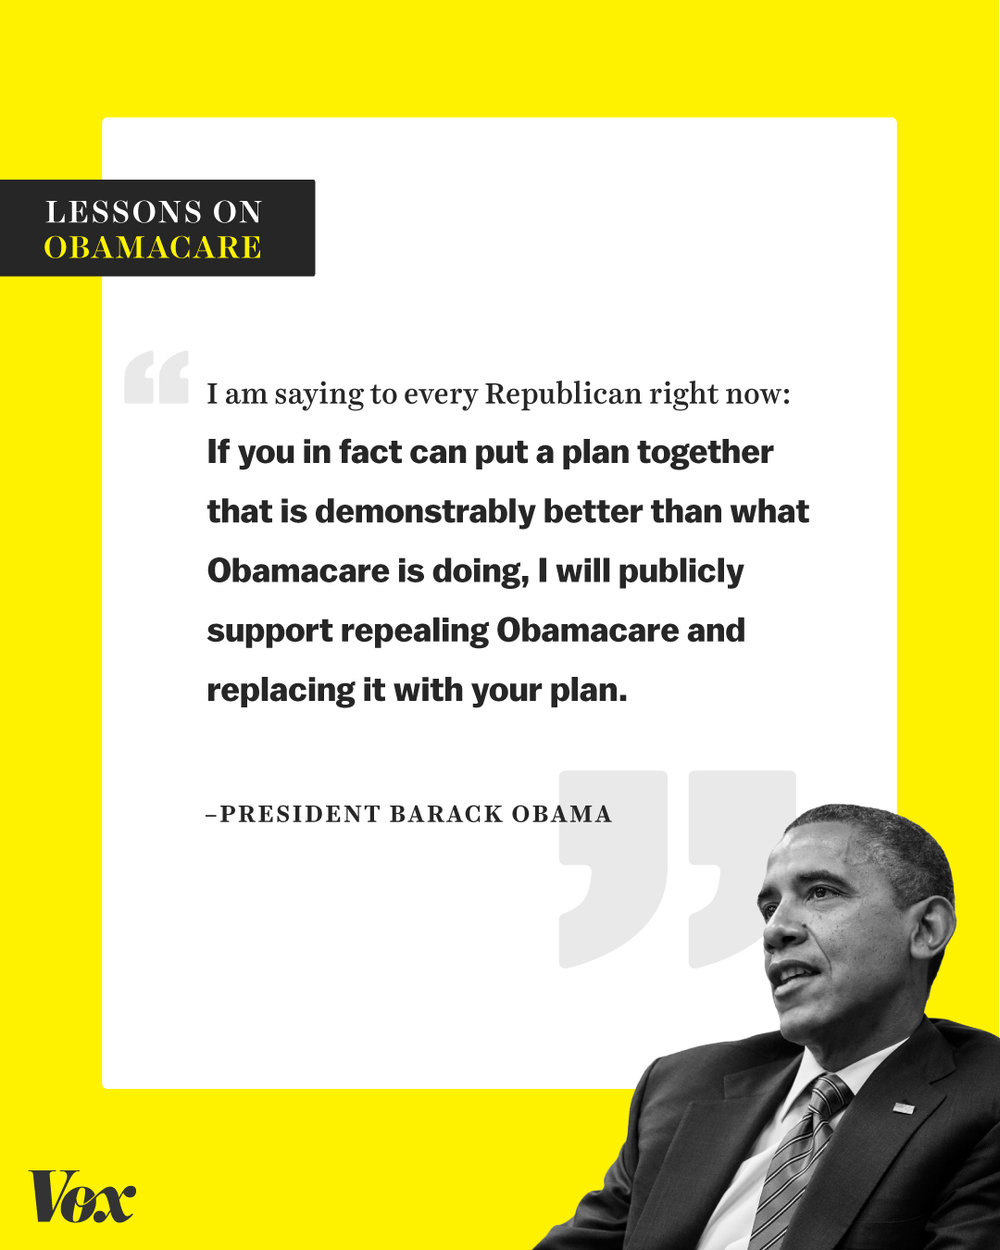 obamaquote002.jpg